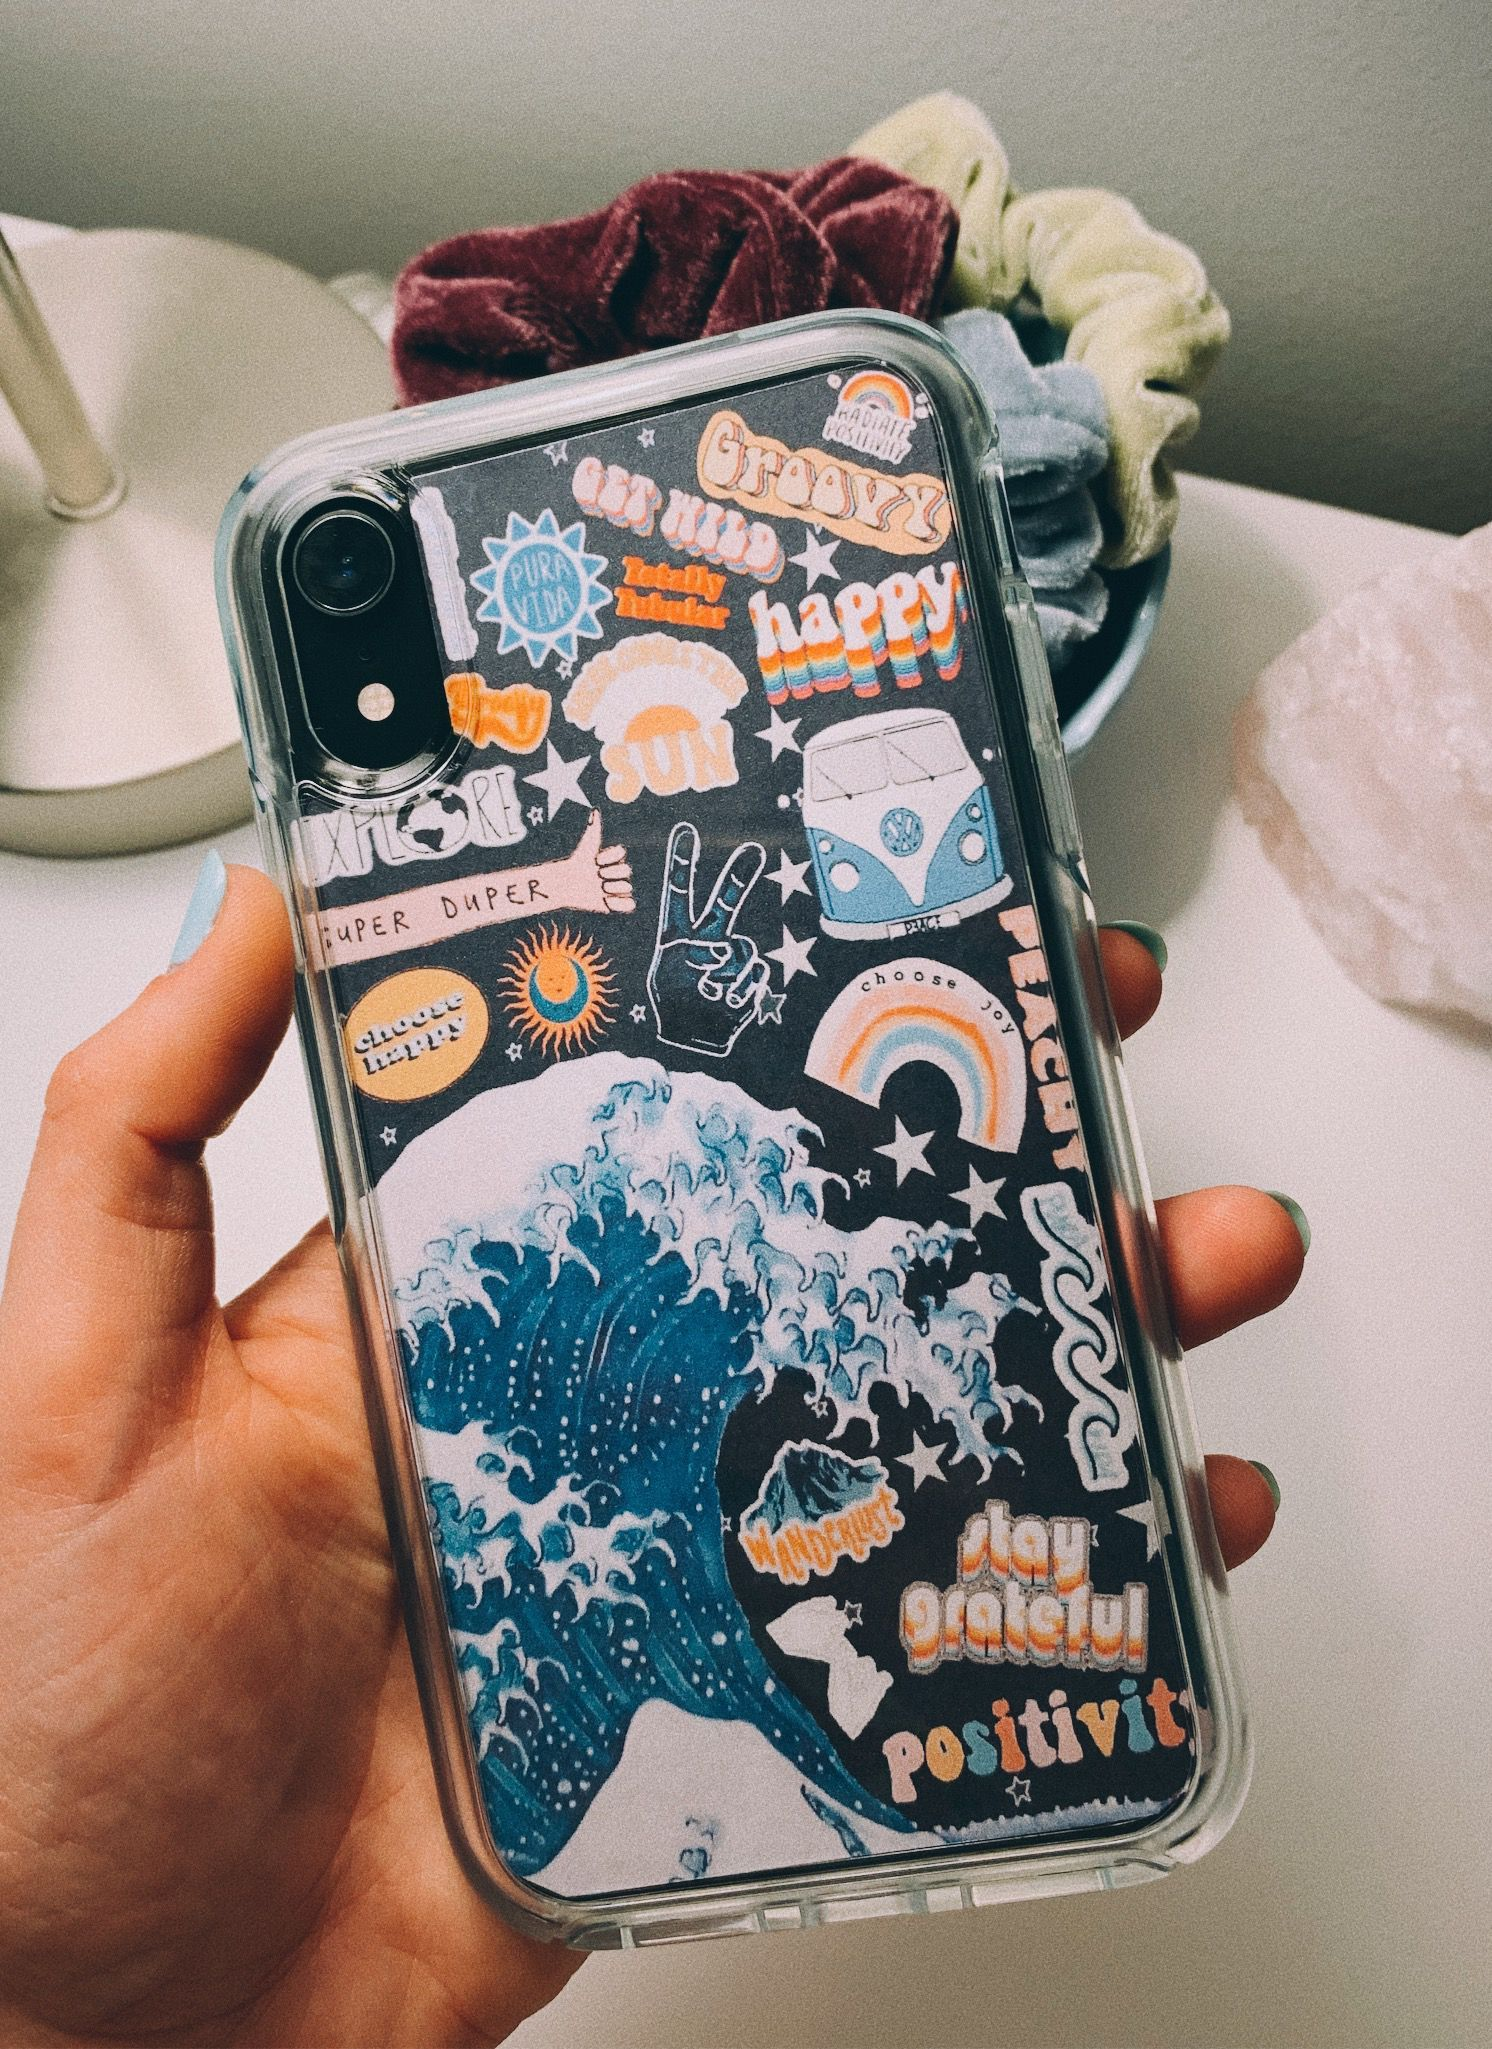 diy phone case #vscogirloutfits in 2020 | Tumblr phone ...